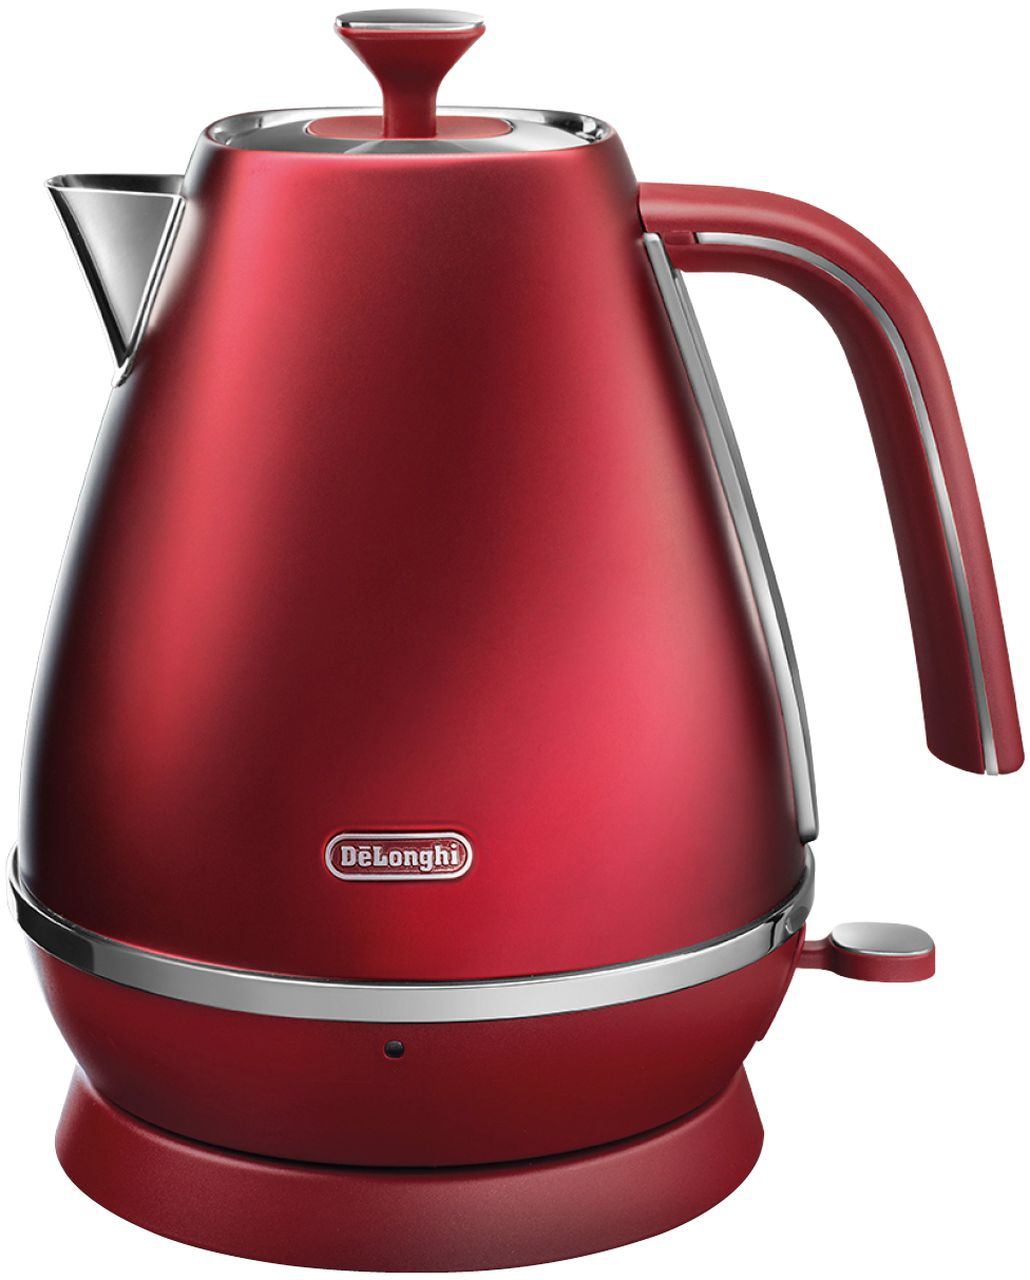 Delonghi - 1.7L Distinta Flair Kettle - Red